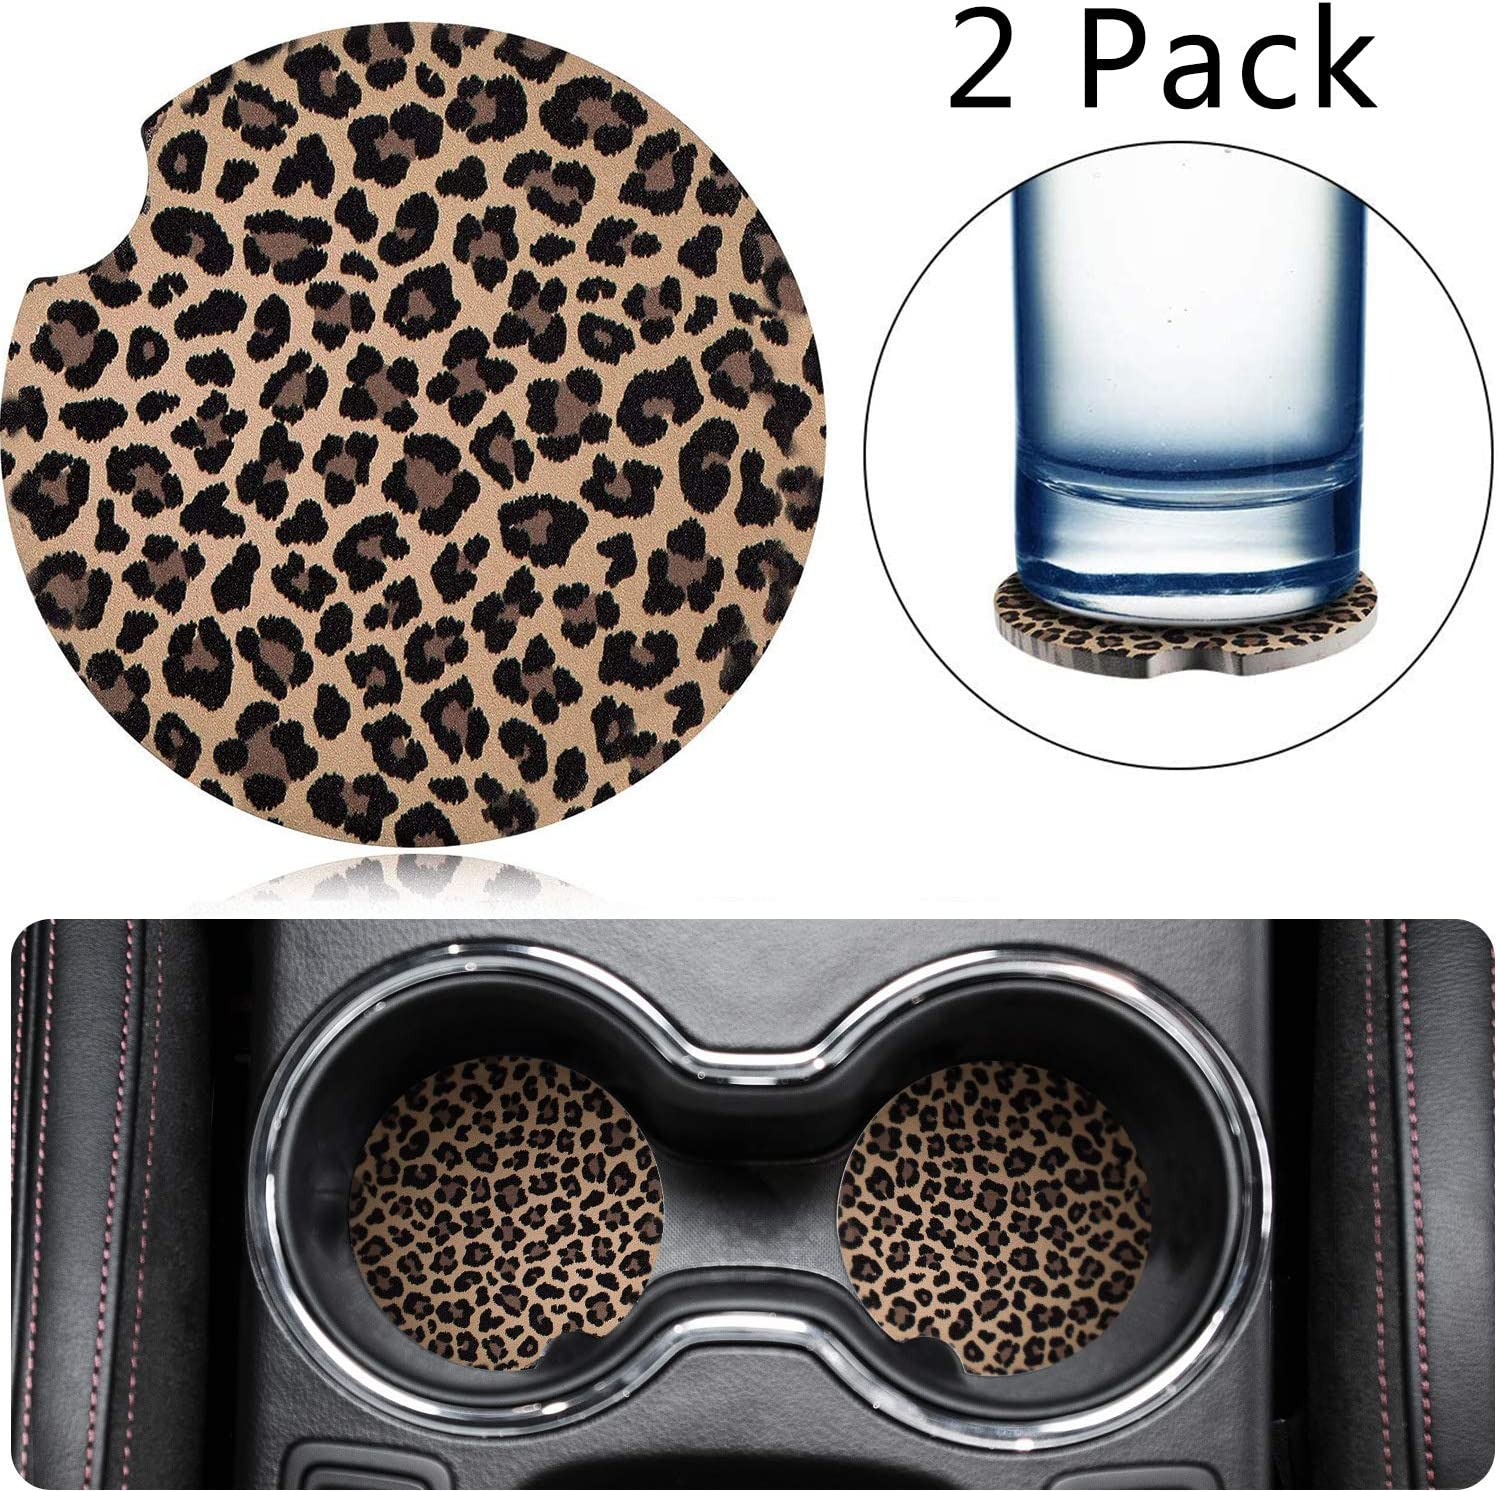 2 2.56 Inch Leopard Car Coasters for Drinks Neoprene Cup Coaster Rubber Car Cup Pad Mat Car Accessories for Car Living Room Kitchen Office to Protect Car and Furniture